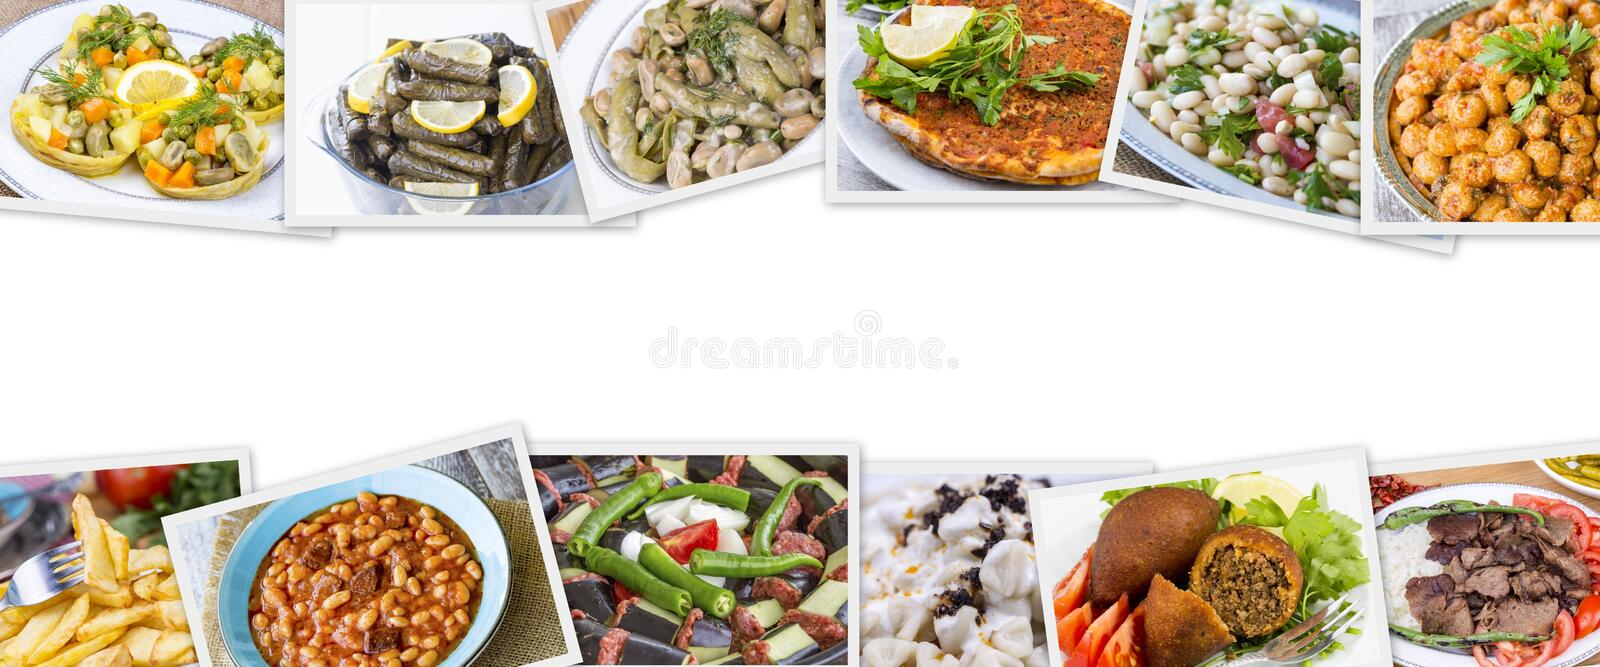 Traditional delicious Turkish foods collage. Food concept photo.  stock image